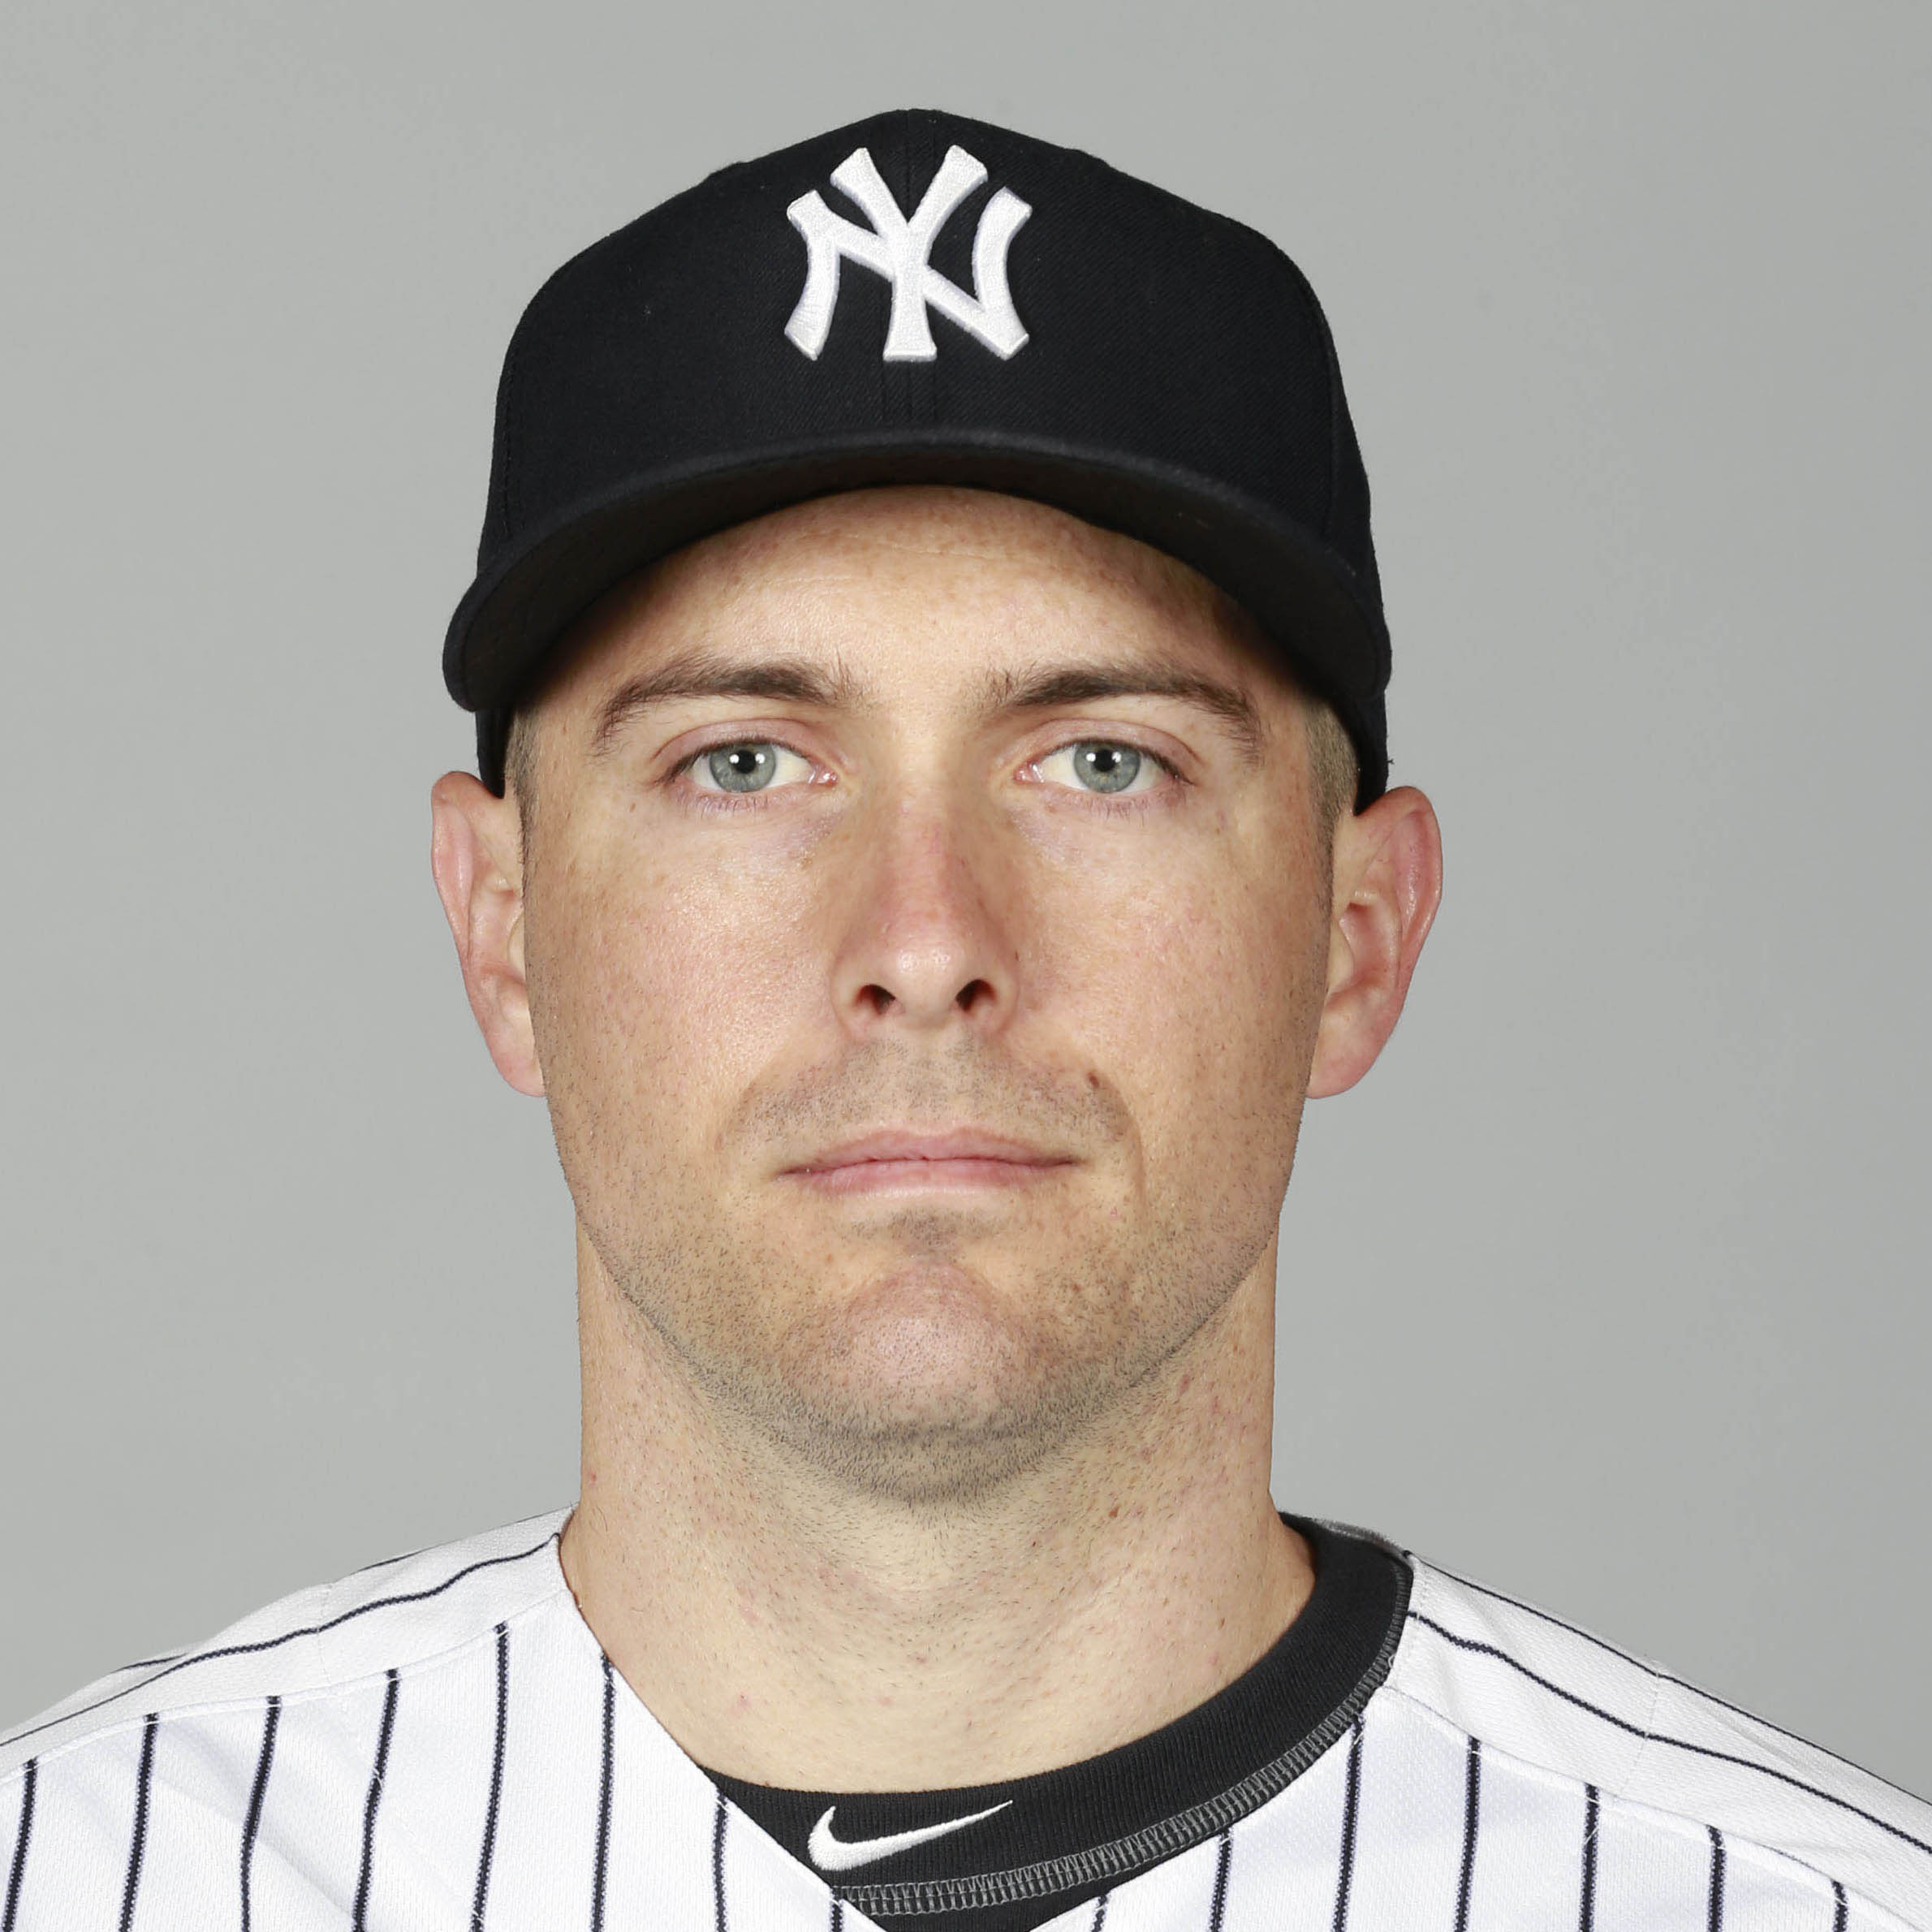 Dustin Ackley Headshot